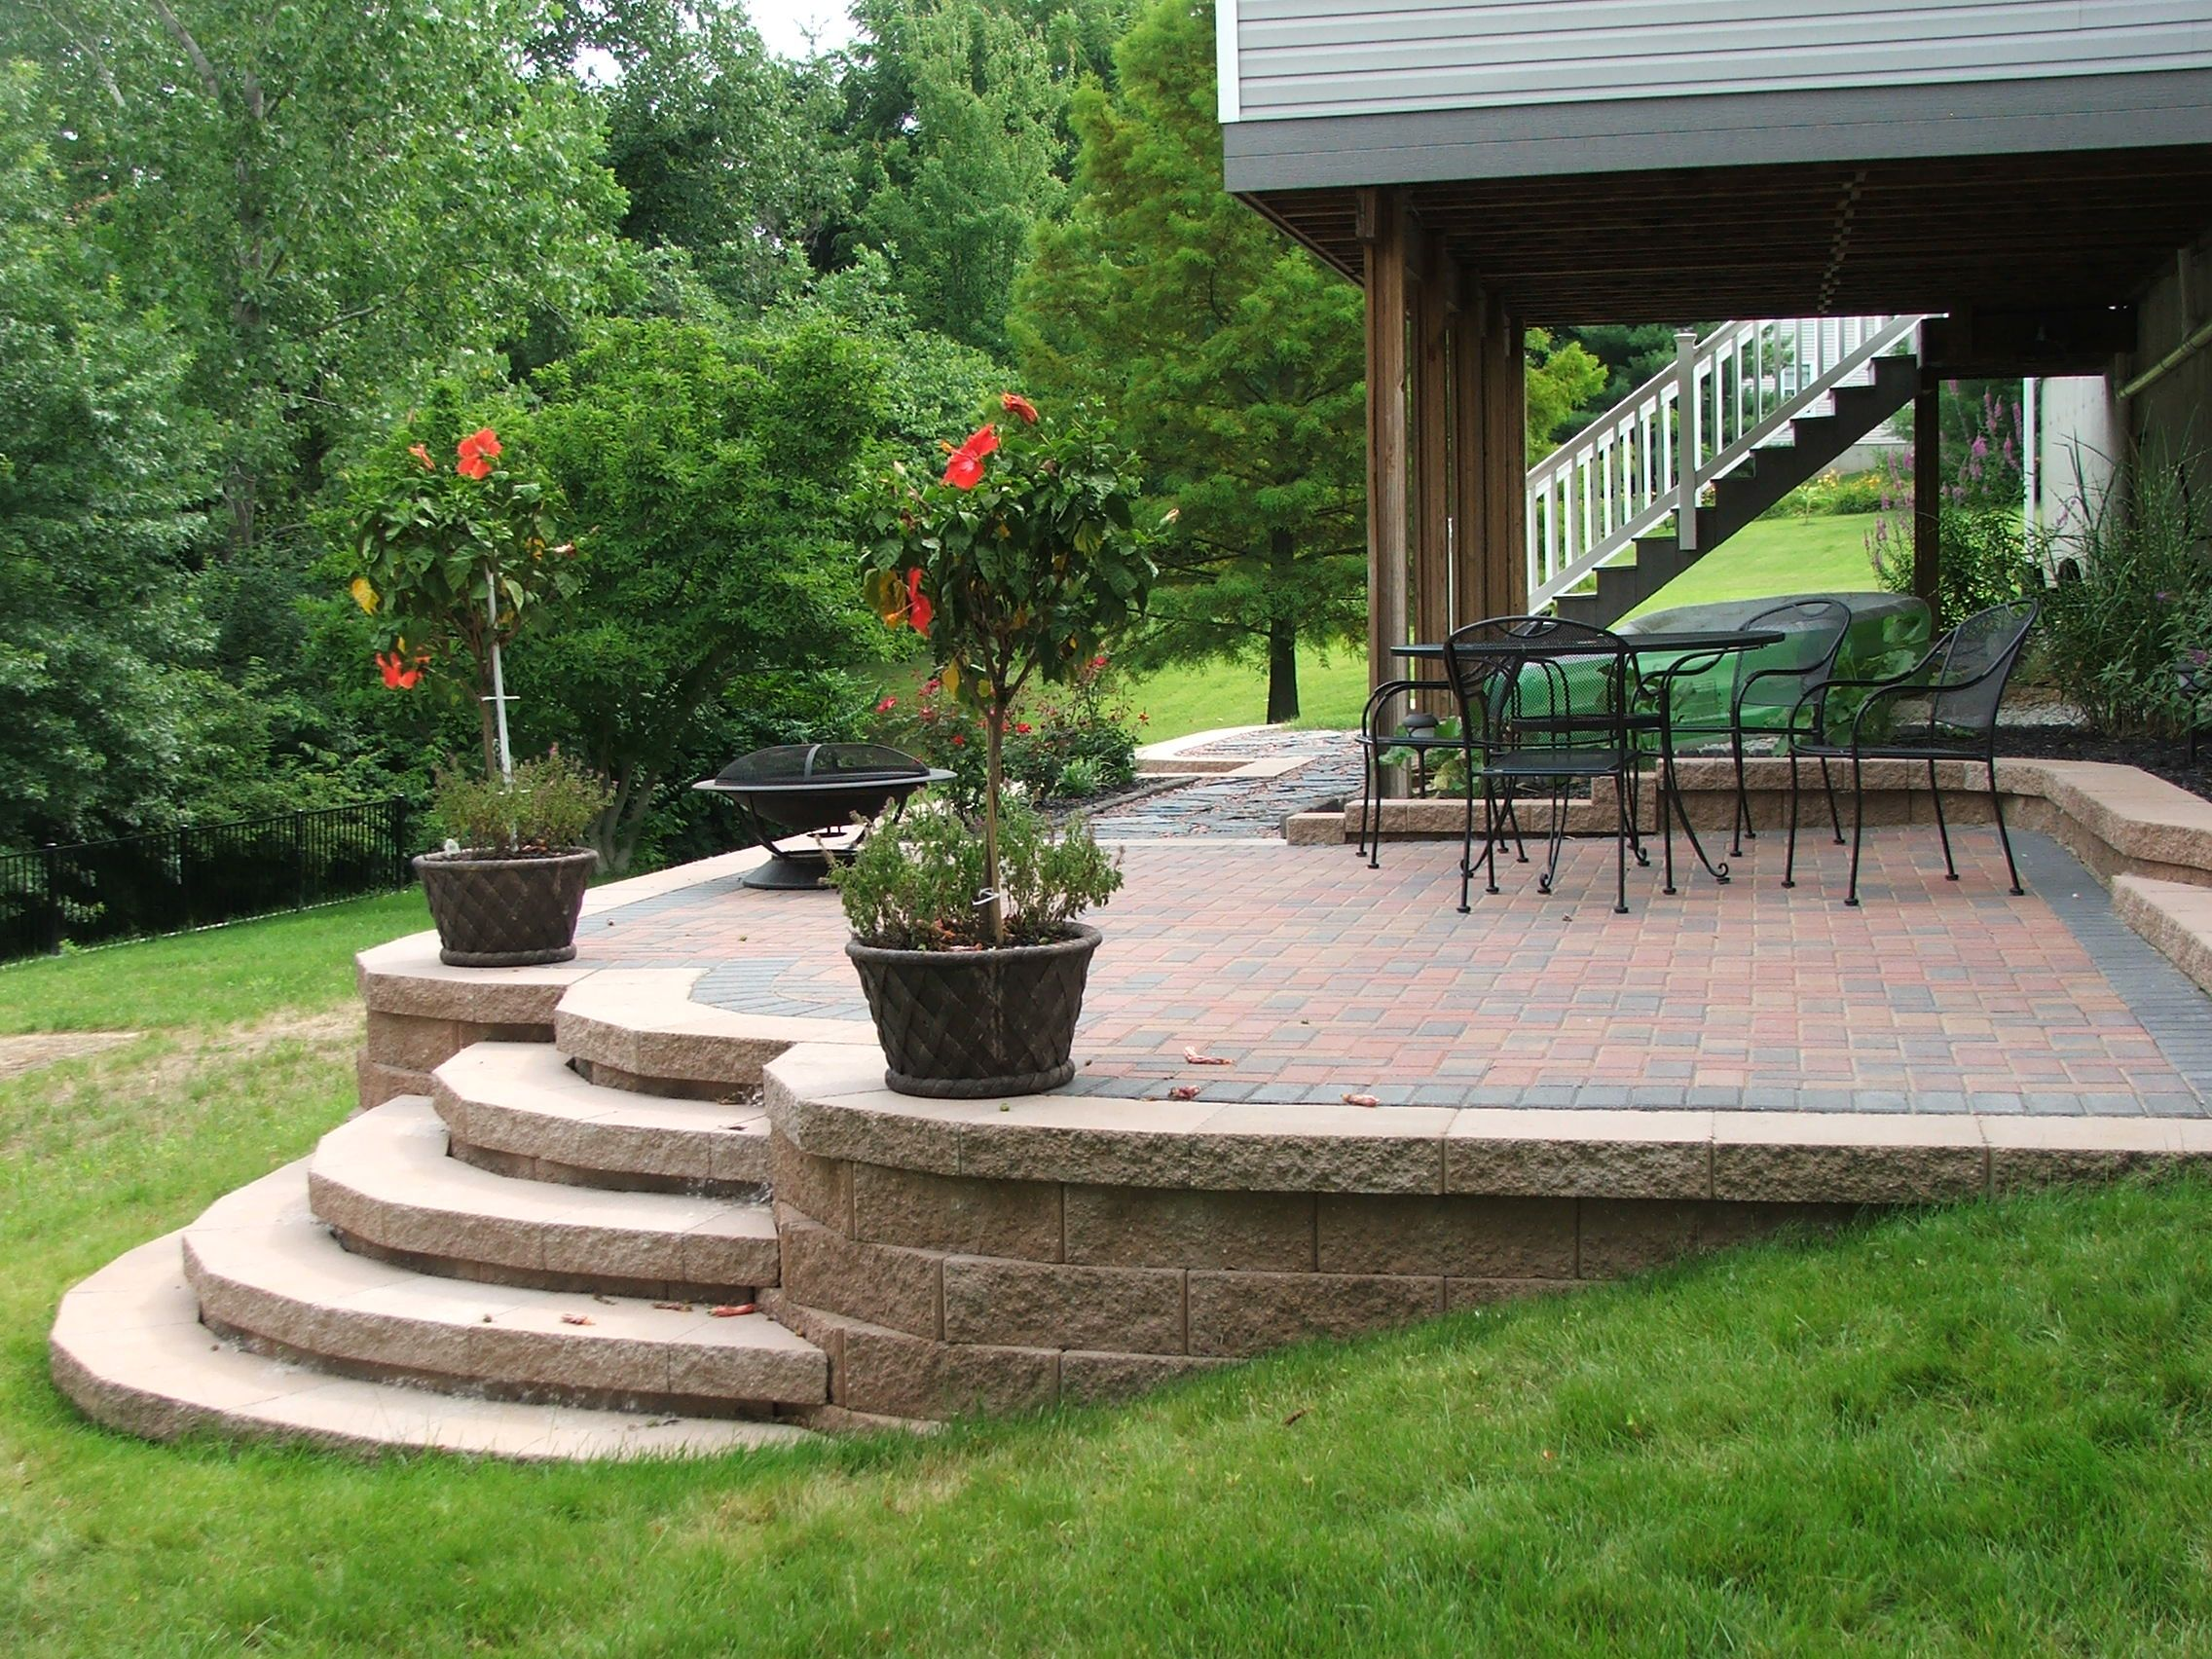 Patio Wall Design design for patio brick patio wall designs round brick patio elegant brick patio wall designs Curved Steps To Paver Patio